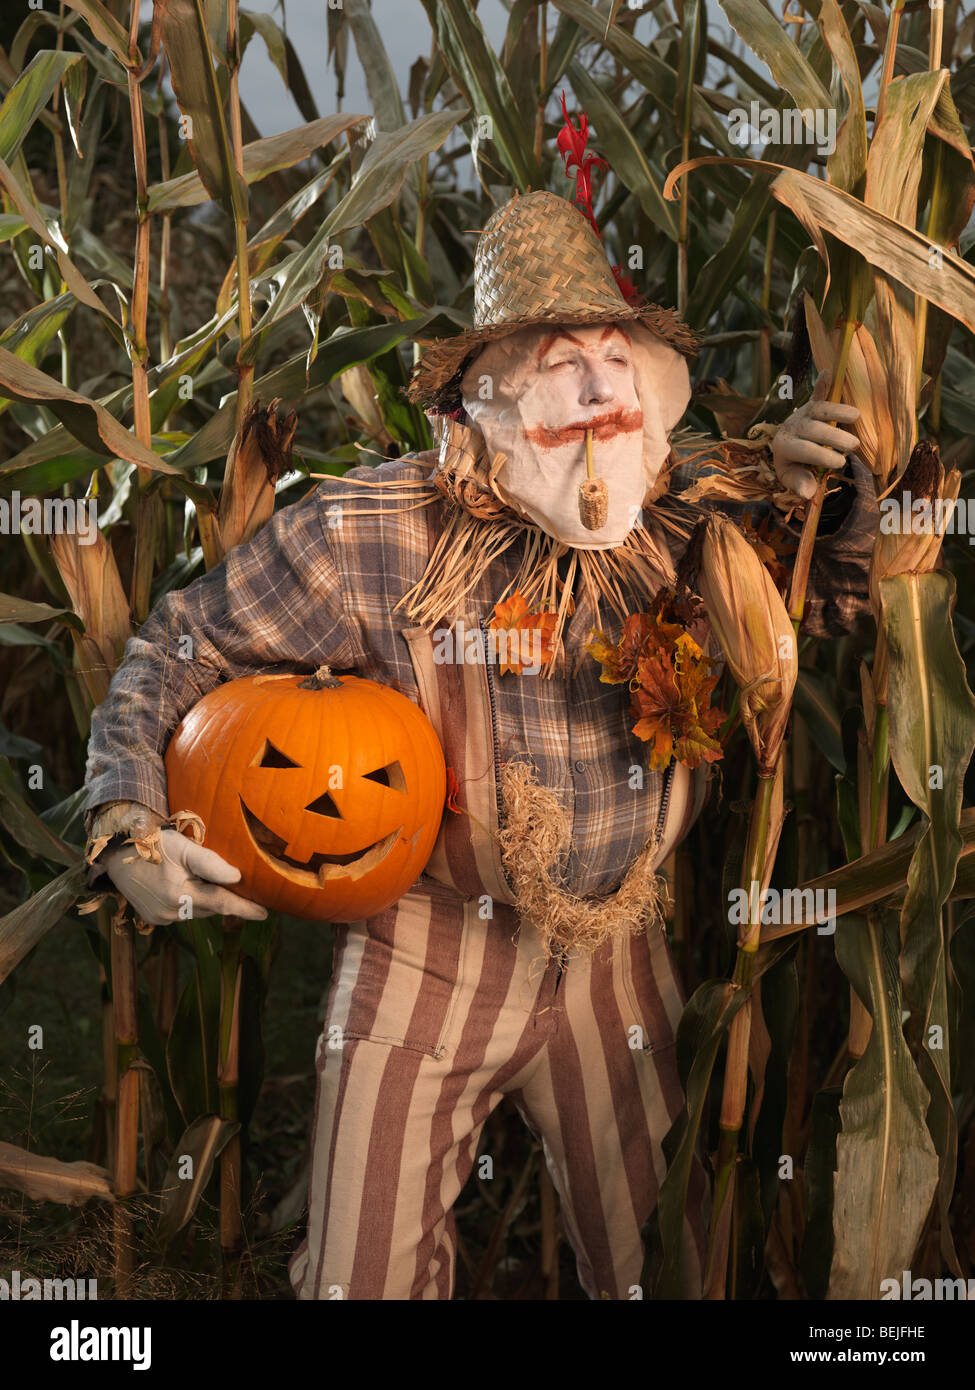 Scarecrow sneaking through a corn field with a stolen carved pumpkin under his arm. Halloween theme. - Stock Image